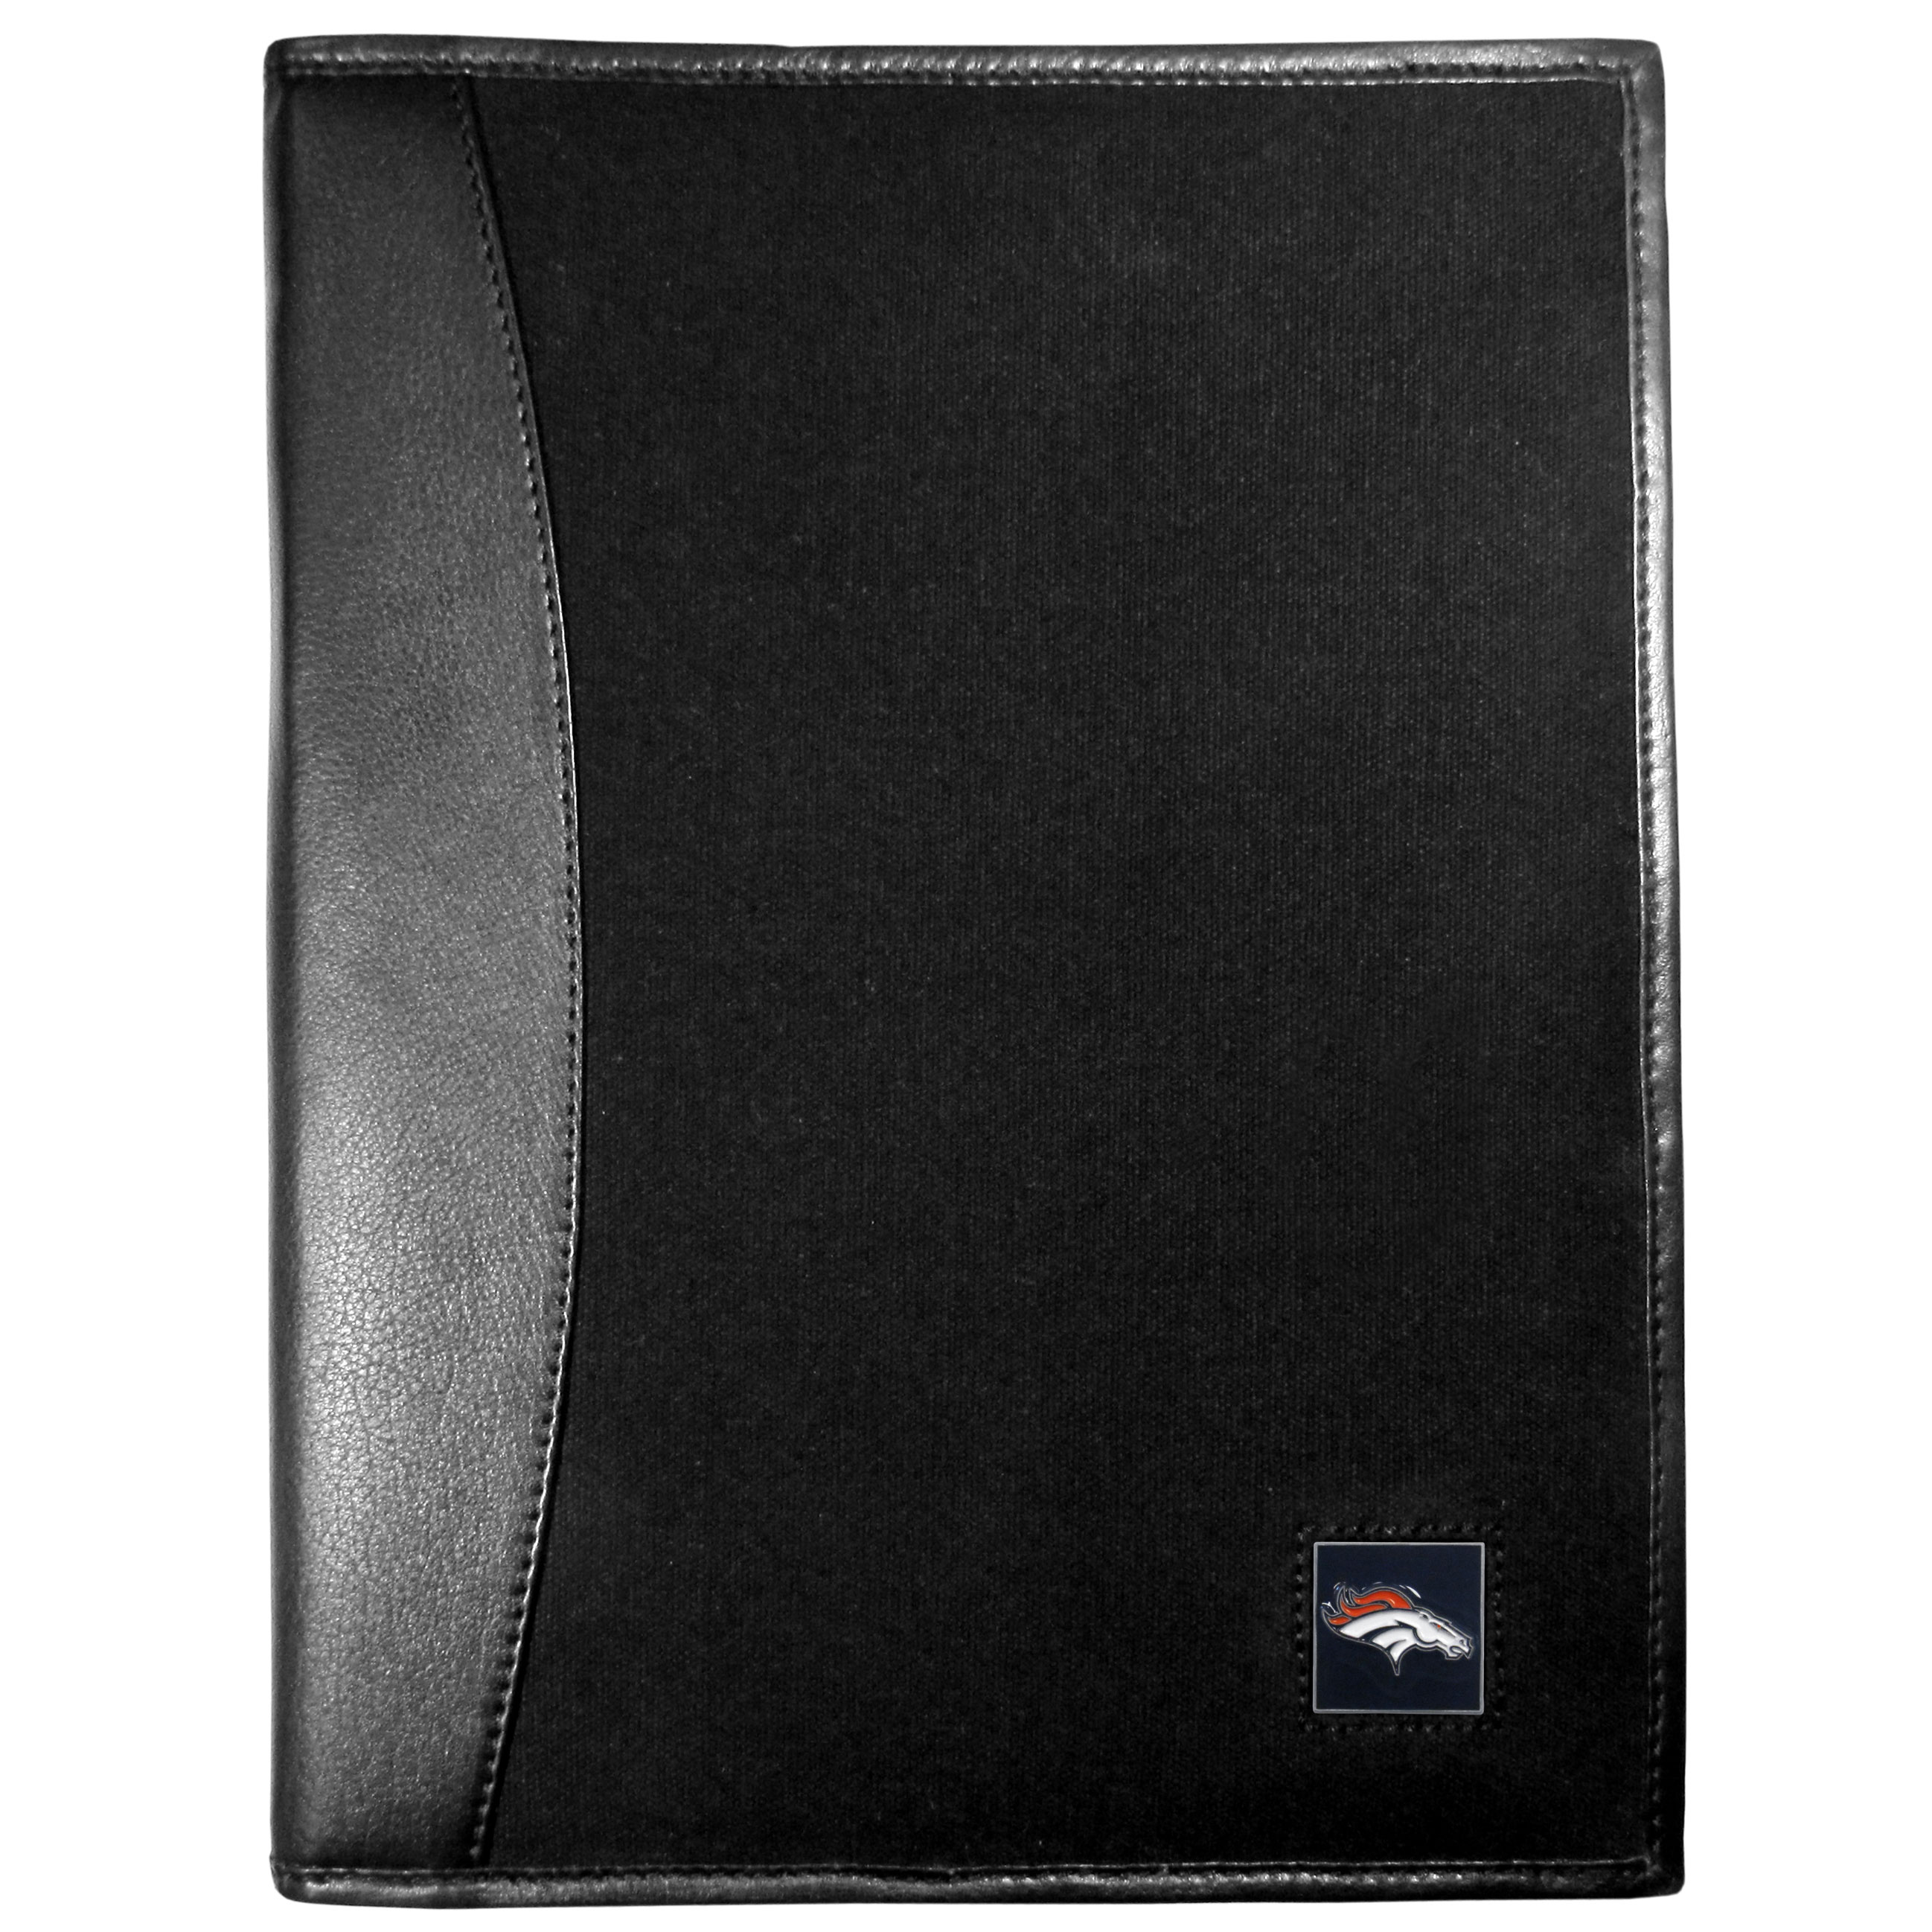 Denver Broncos Leather and Canvas Padfolio - Our leather and canvas padfolio perfectly blends form and function. The attractive portfolio is bound in fine grain leather with an attractive canvas finish and the interior is a soft nylon. This high quality business accessory also features a fully cast metal Denver Broncos emblem that is subtly set in the corner of the organizer. It is packed with features like 6 card slots for badges, business cards, hotel keys or credit cards and ID with a large pocket for loose papers and a writing tablet slot making it a must-have for the professional on the go.